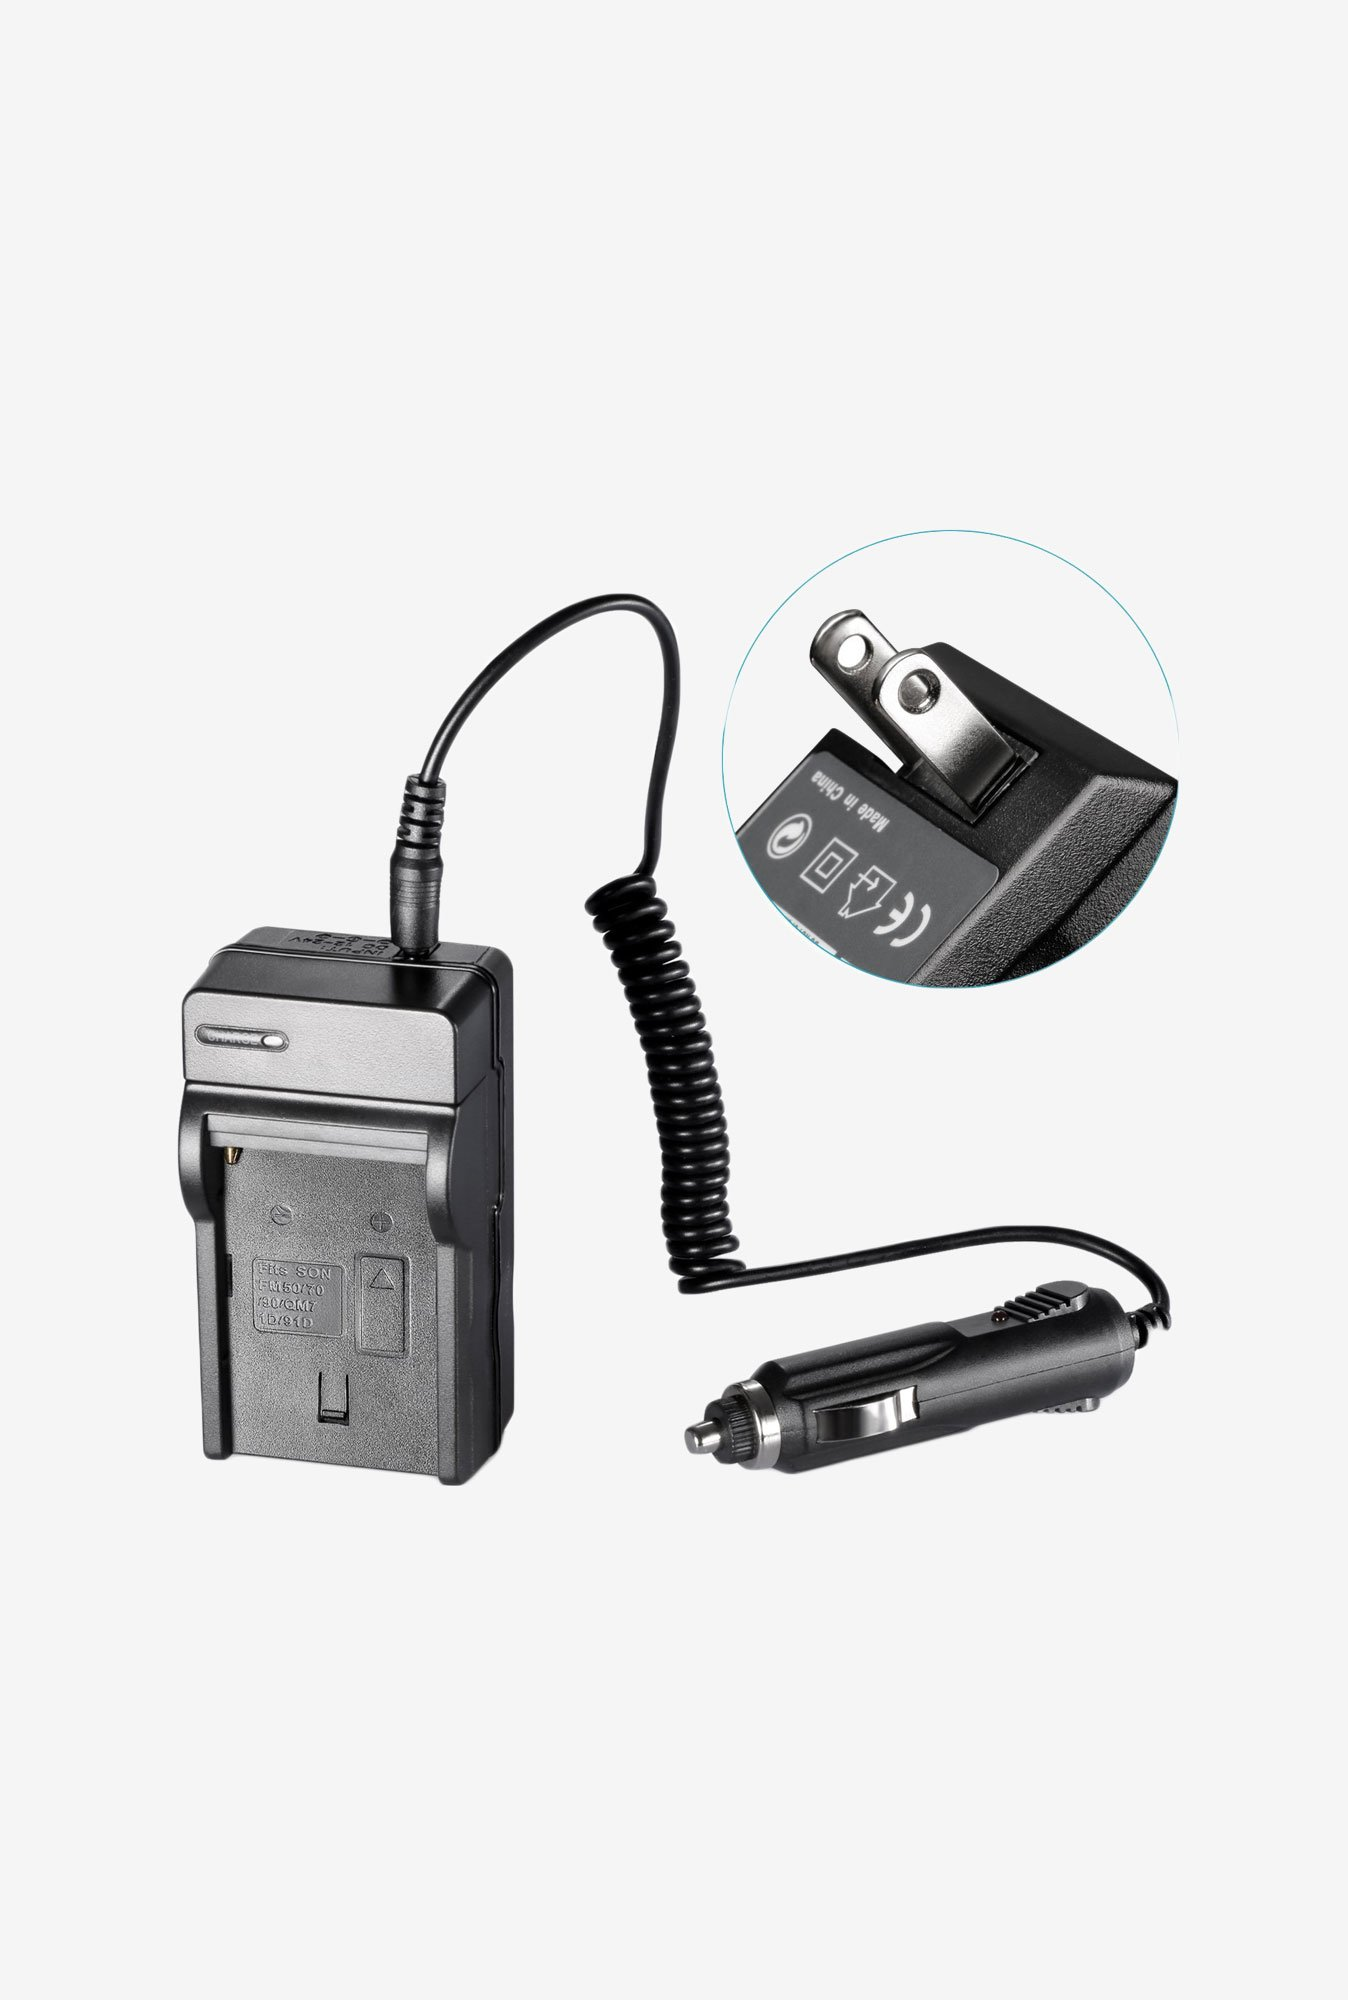 Neewer NP-FM500 AC Wall Charger In-Car Adapter (Black)